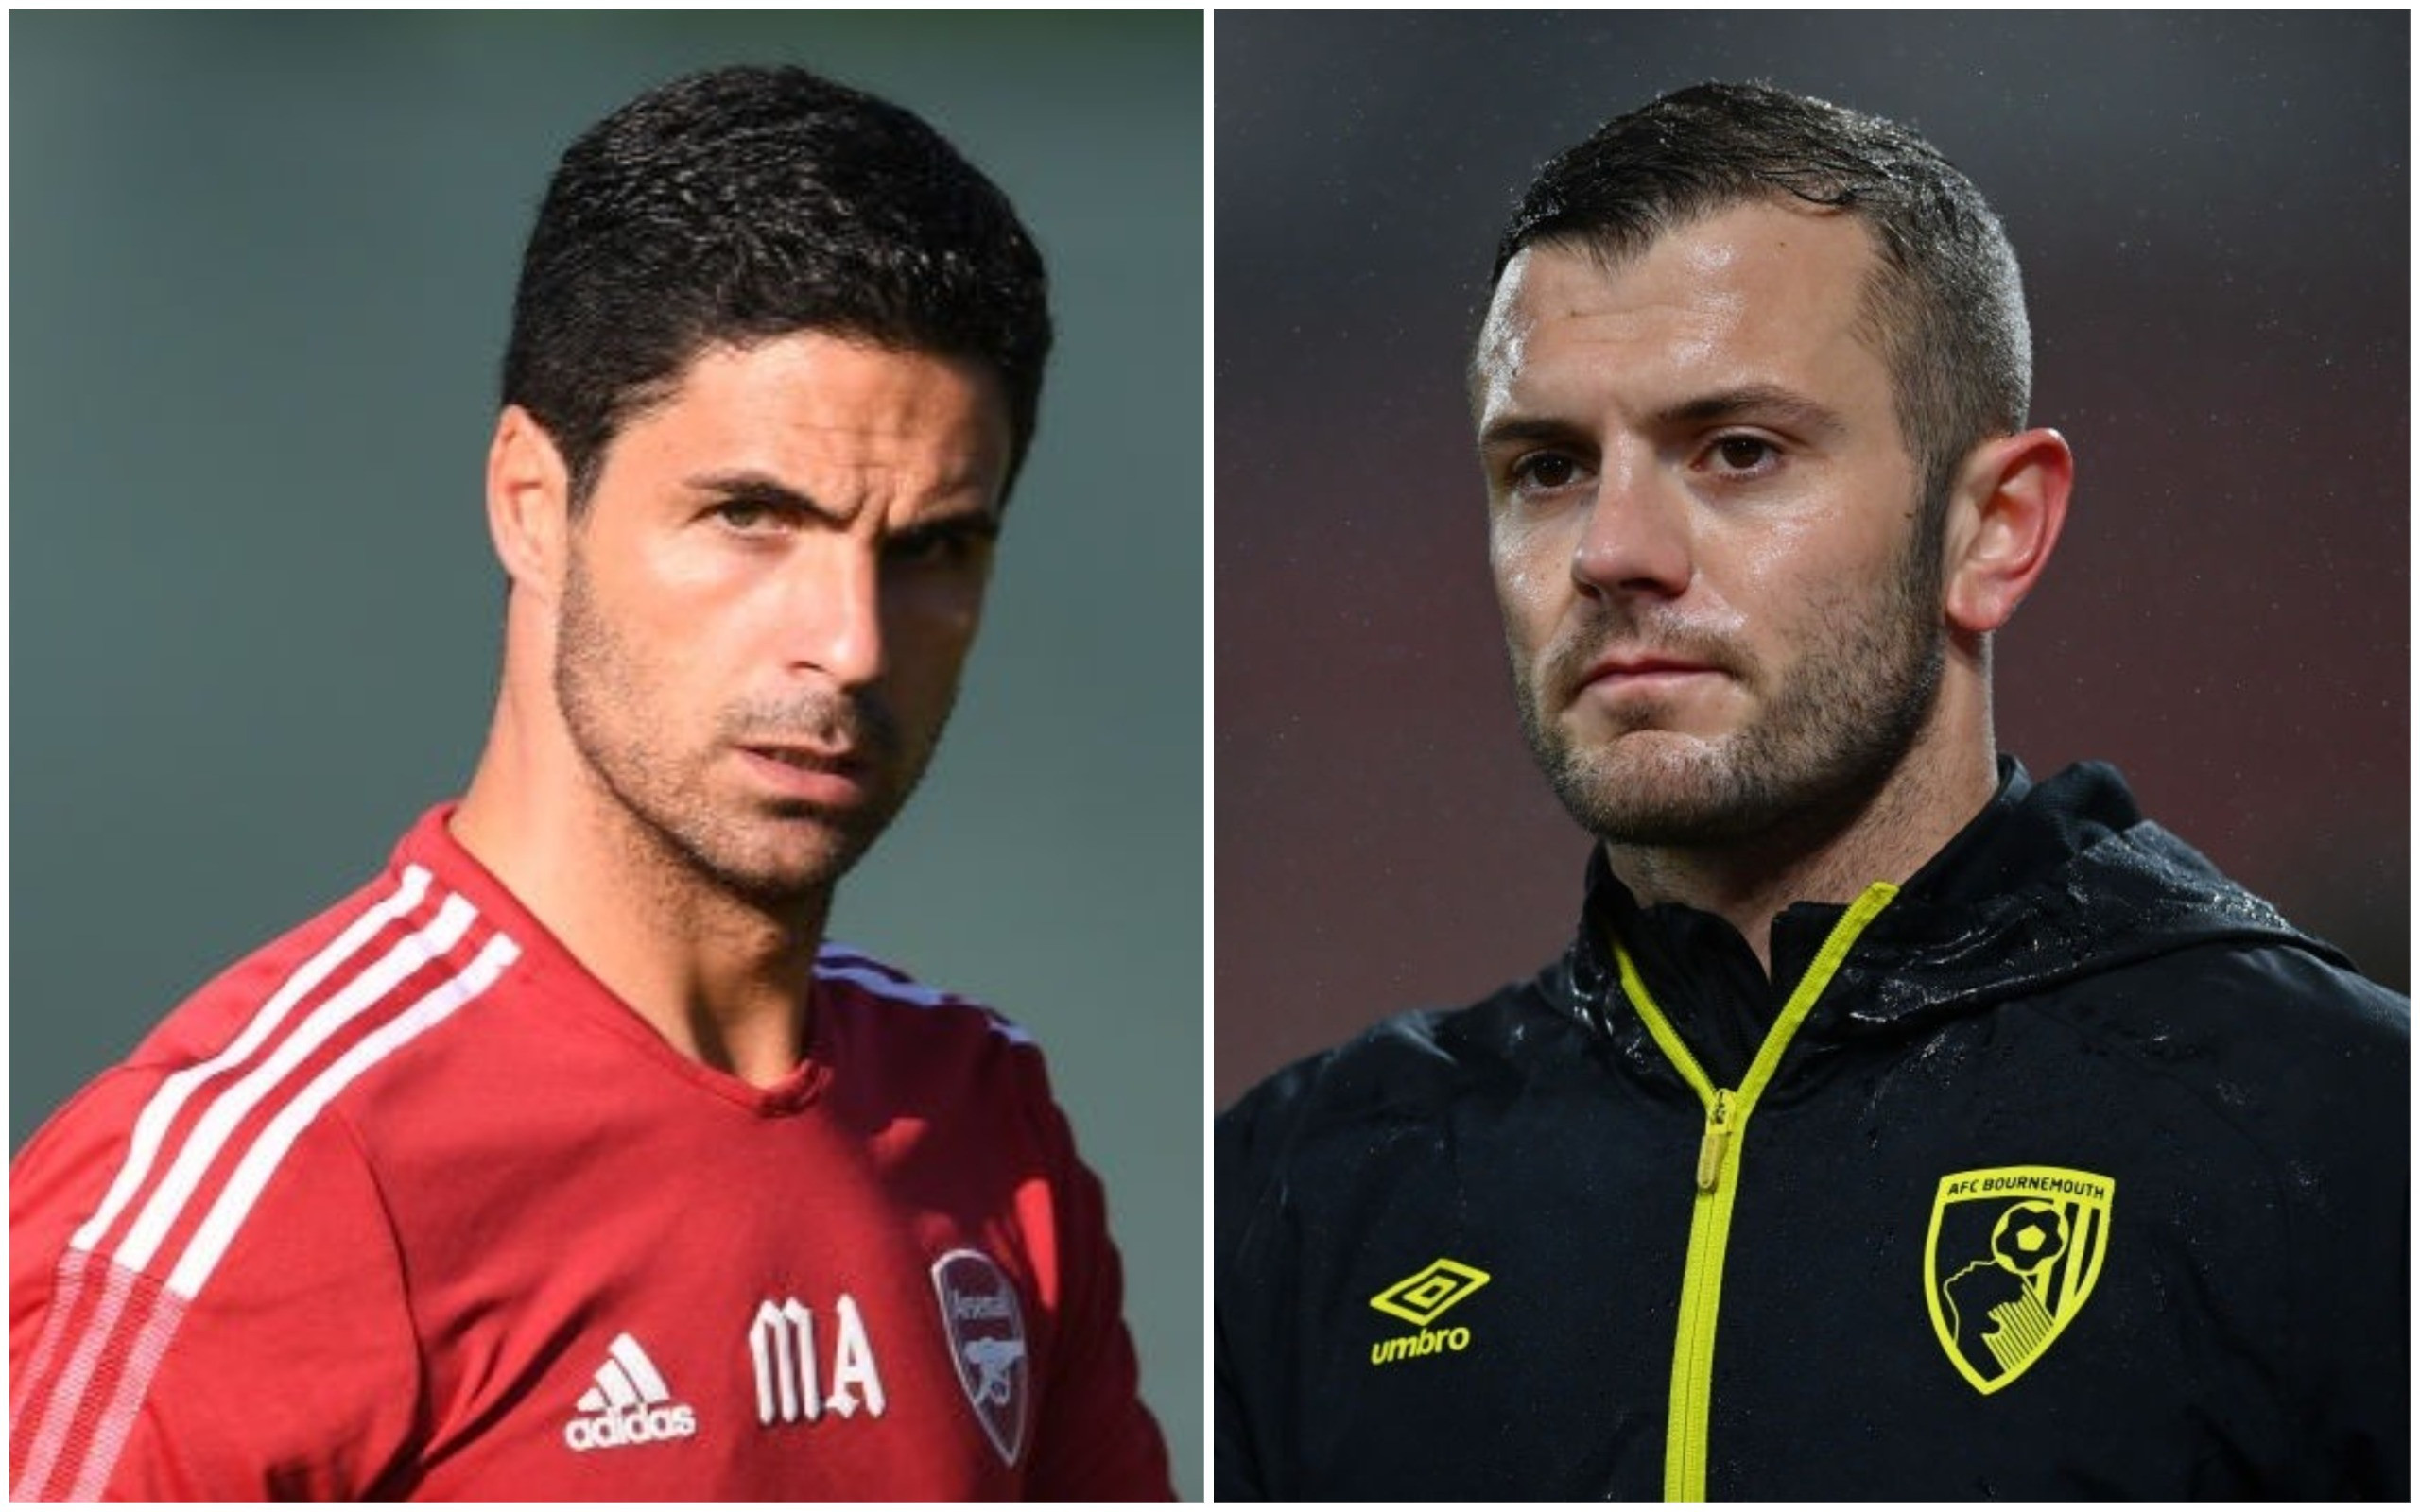 Jack Wilshere urges Arsenal fans to stick by Mikel Arteta as he's the 'right guy'